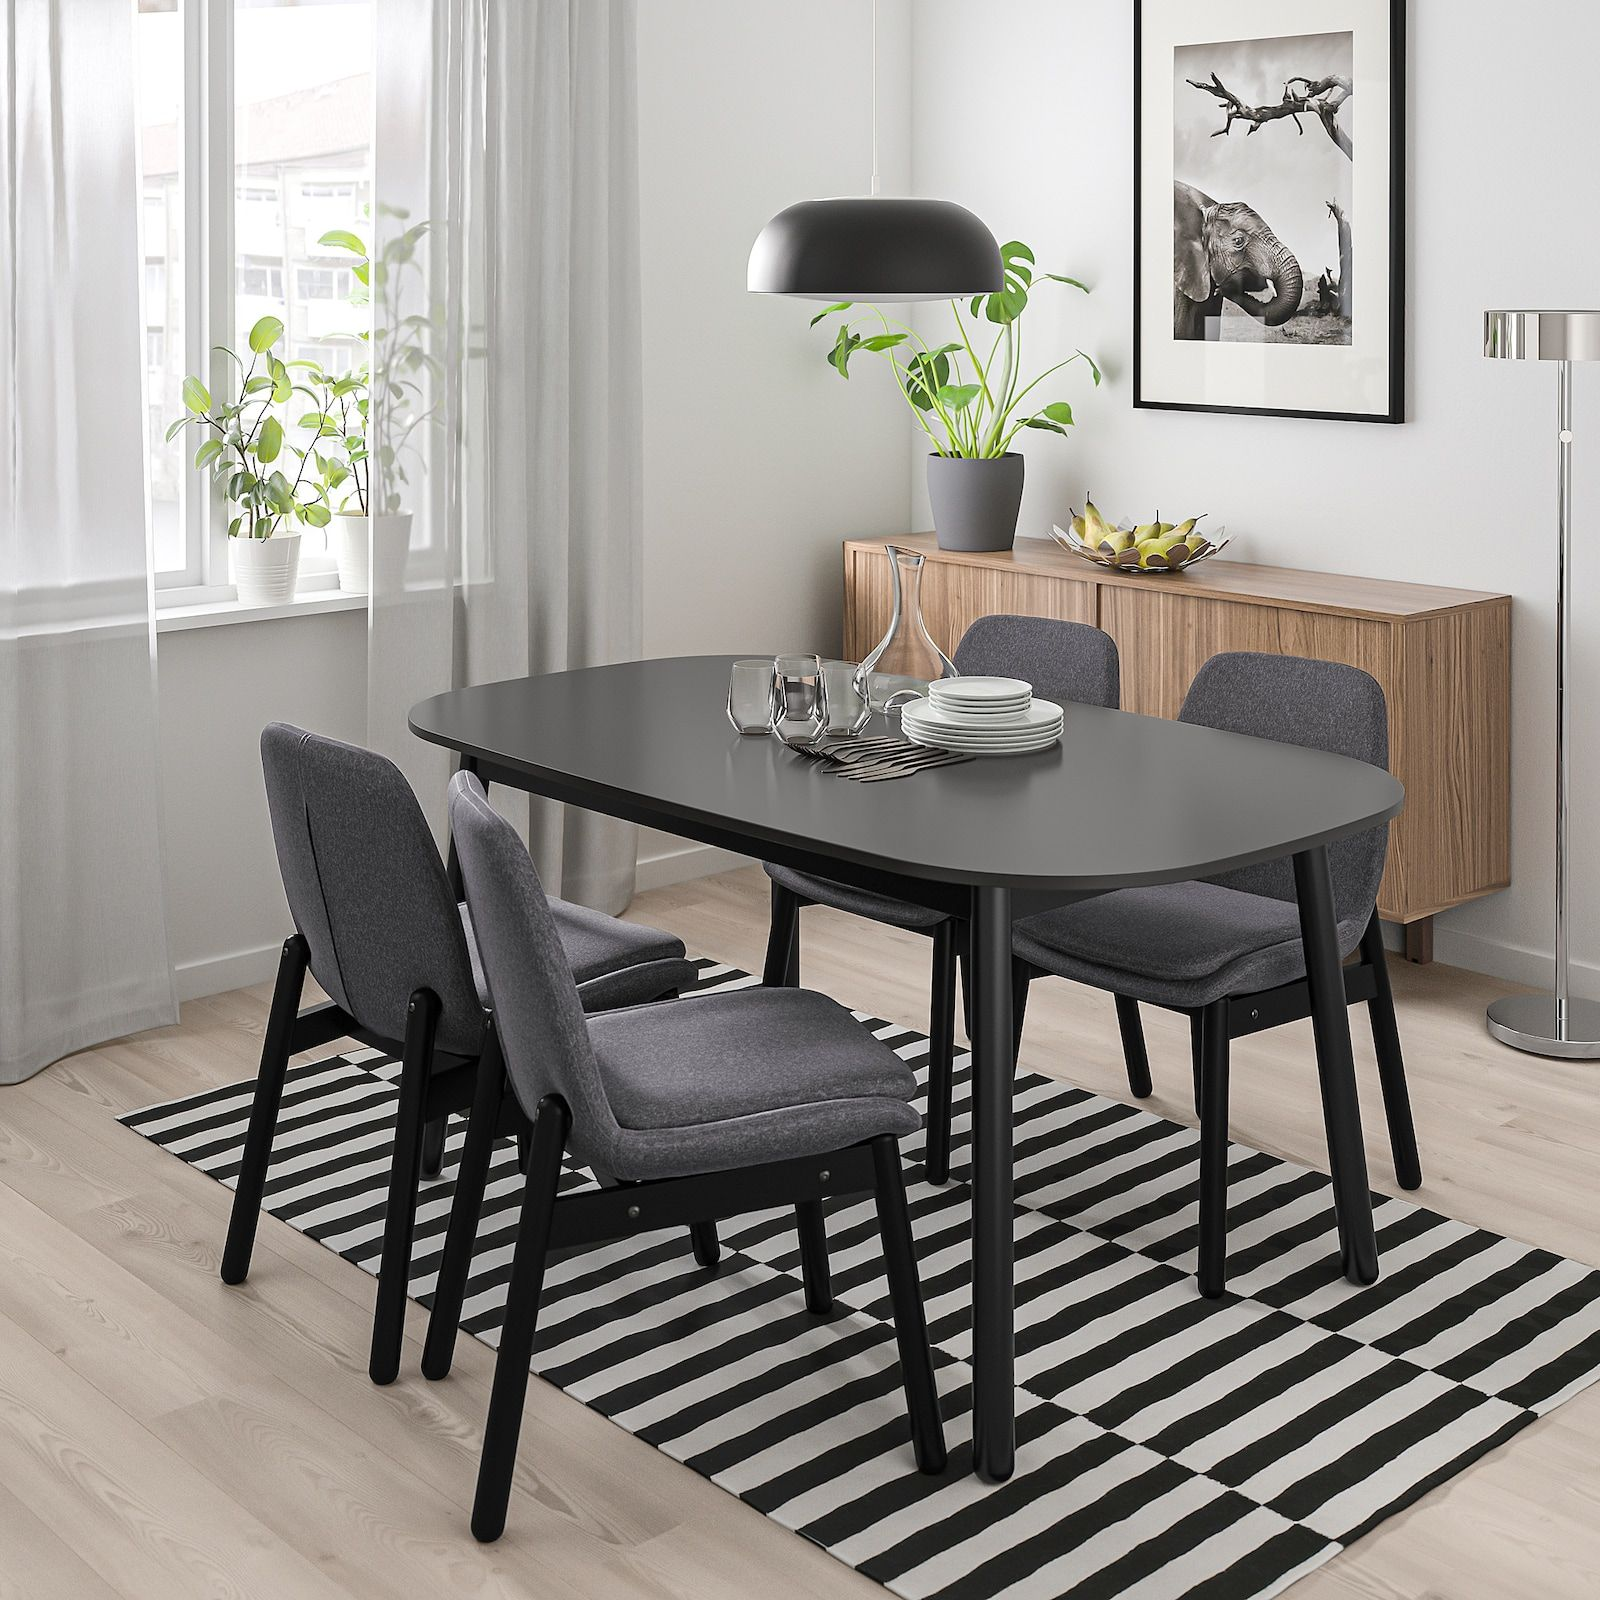 Dining Table With Bench Seats Ikea Alina Cm Dining Table With Corner And Small Bench Image Marvell Corner Dining Table Kitchen Table Settings Dining Room Small